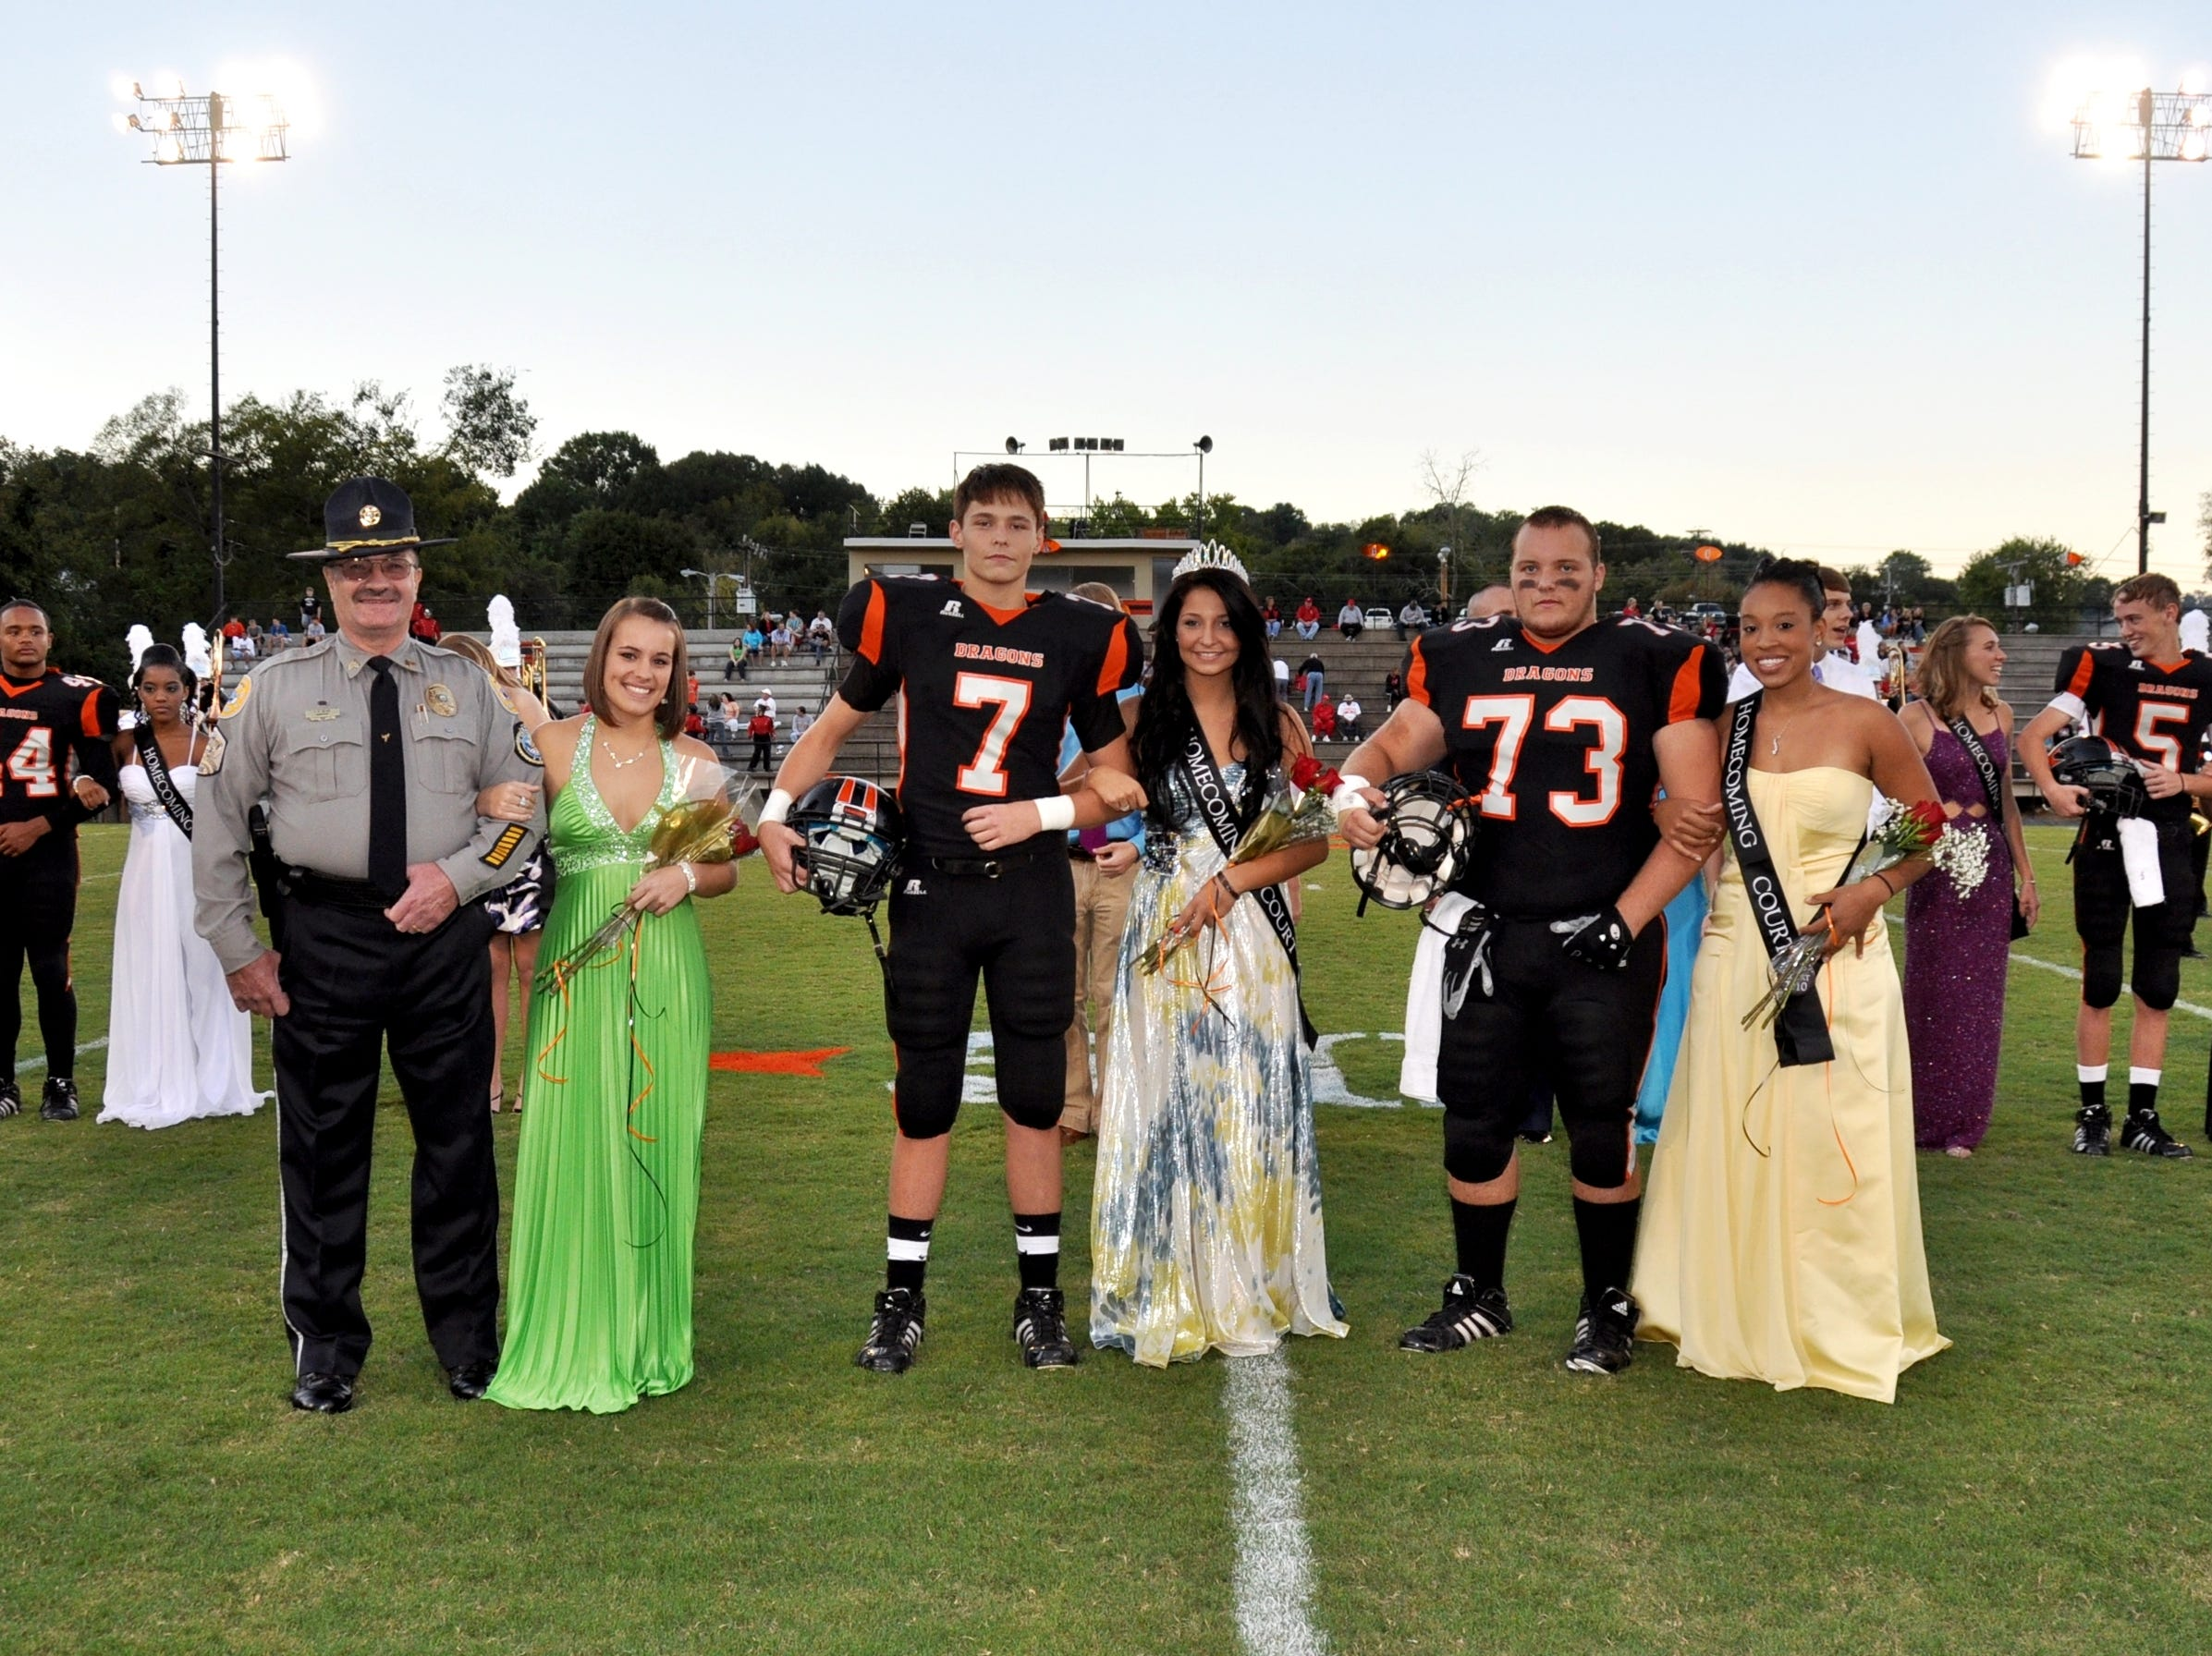 reader-submitted photo